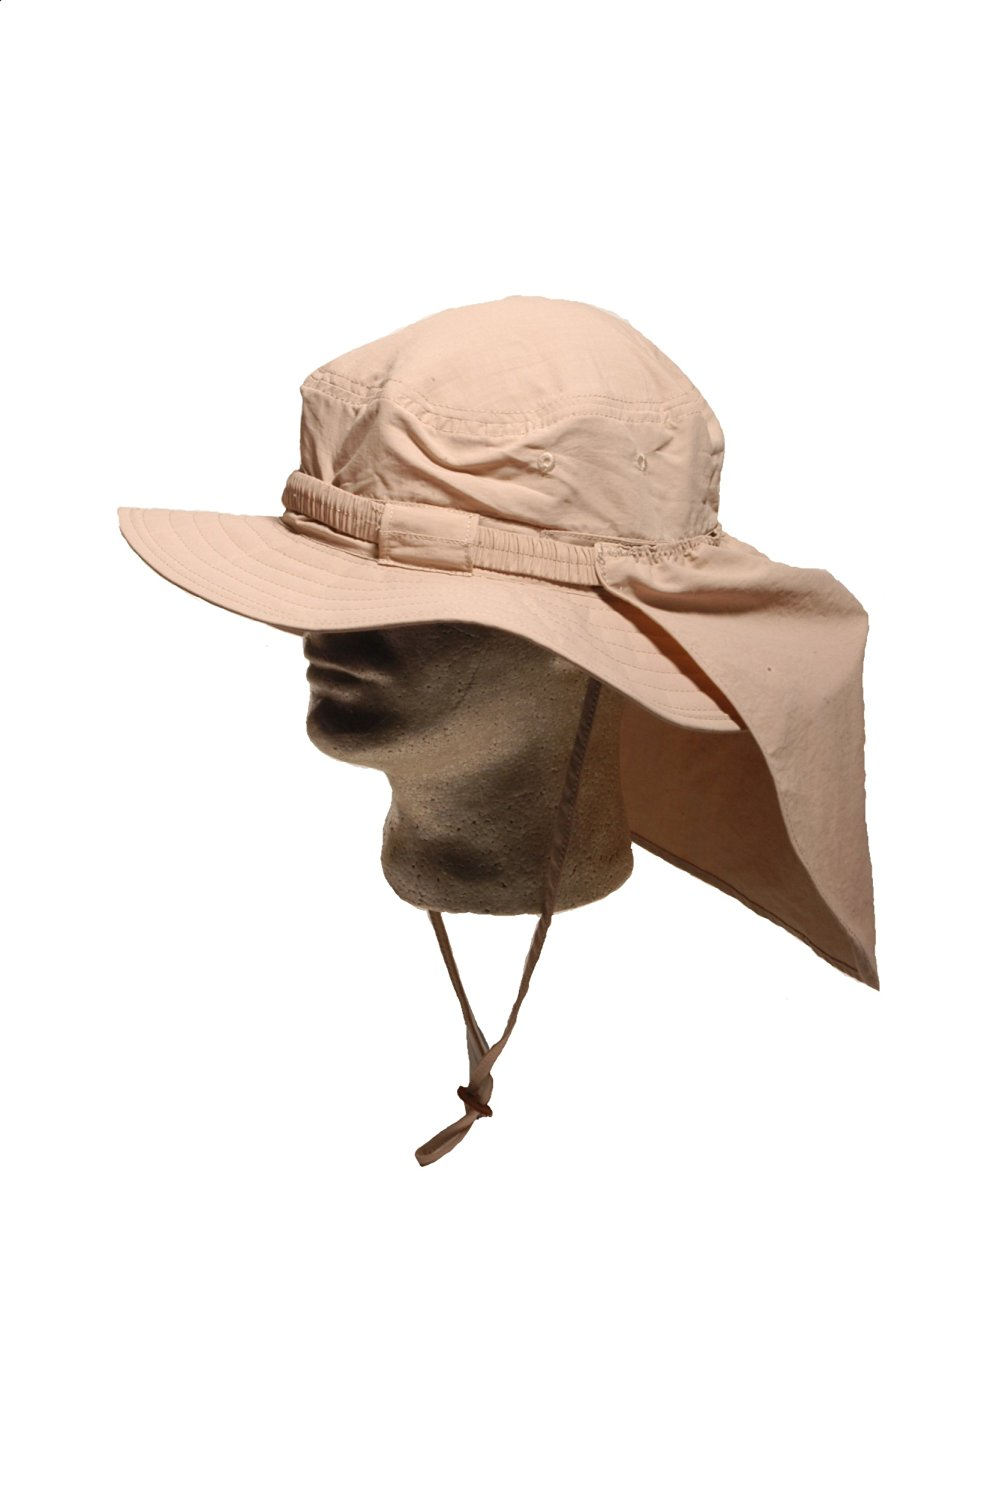 878d4b25f75 Get Quotations · Glacier Glove Boonie Hat with Shade